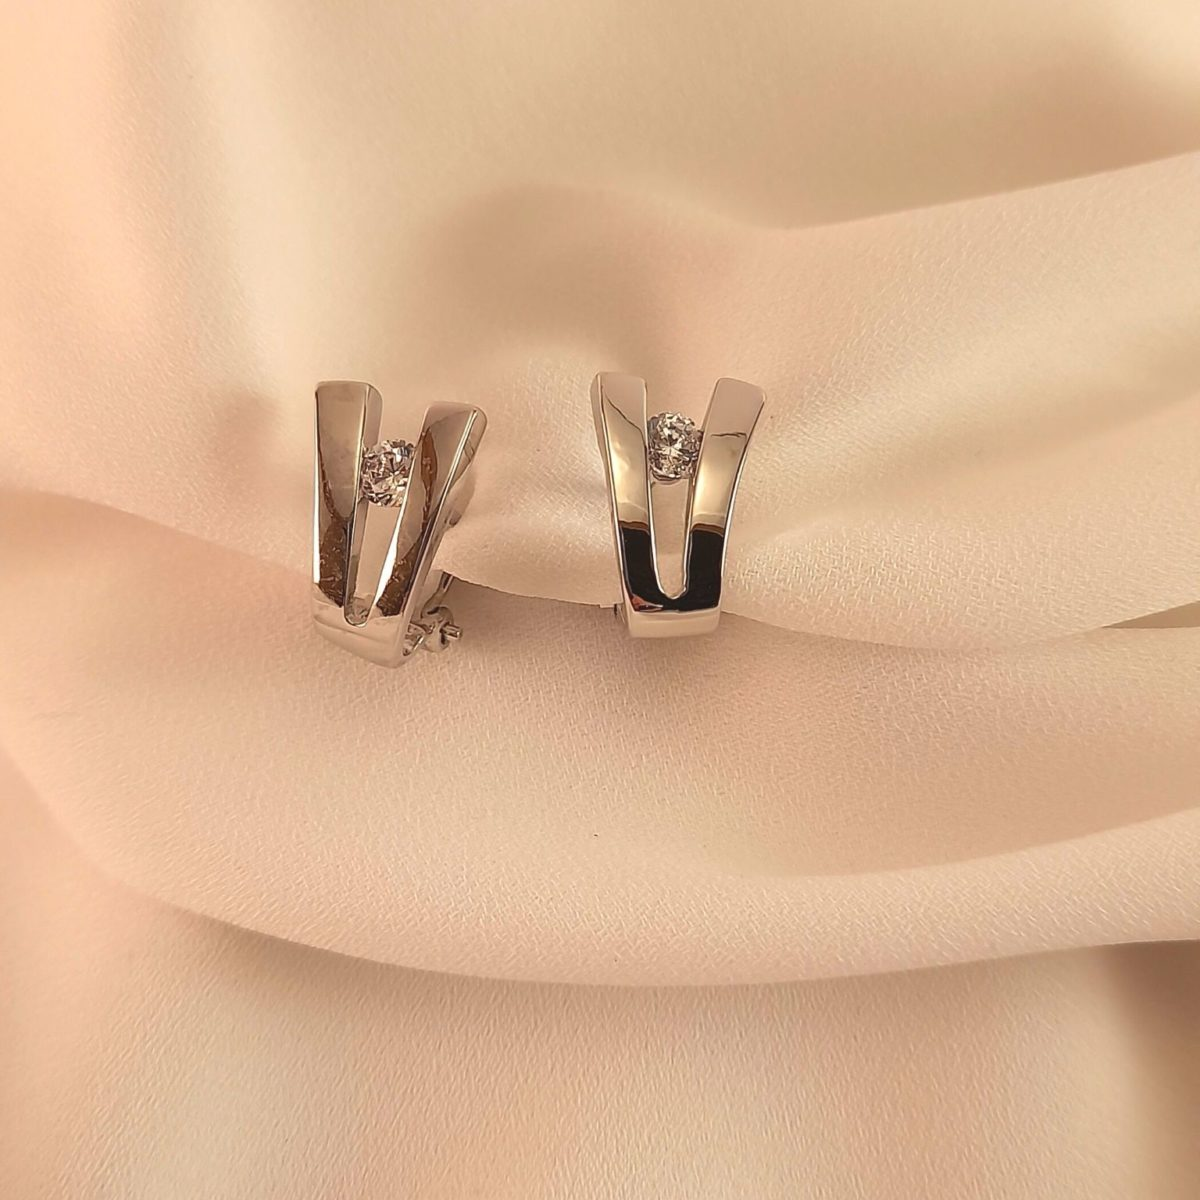 Silver-colored V Earrings And A Brilliant